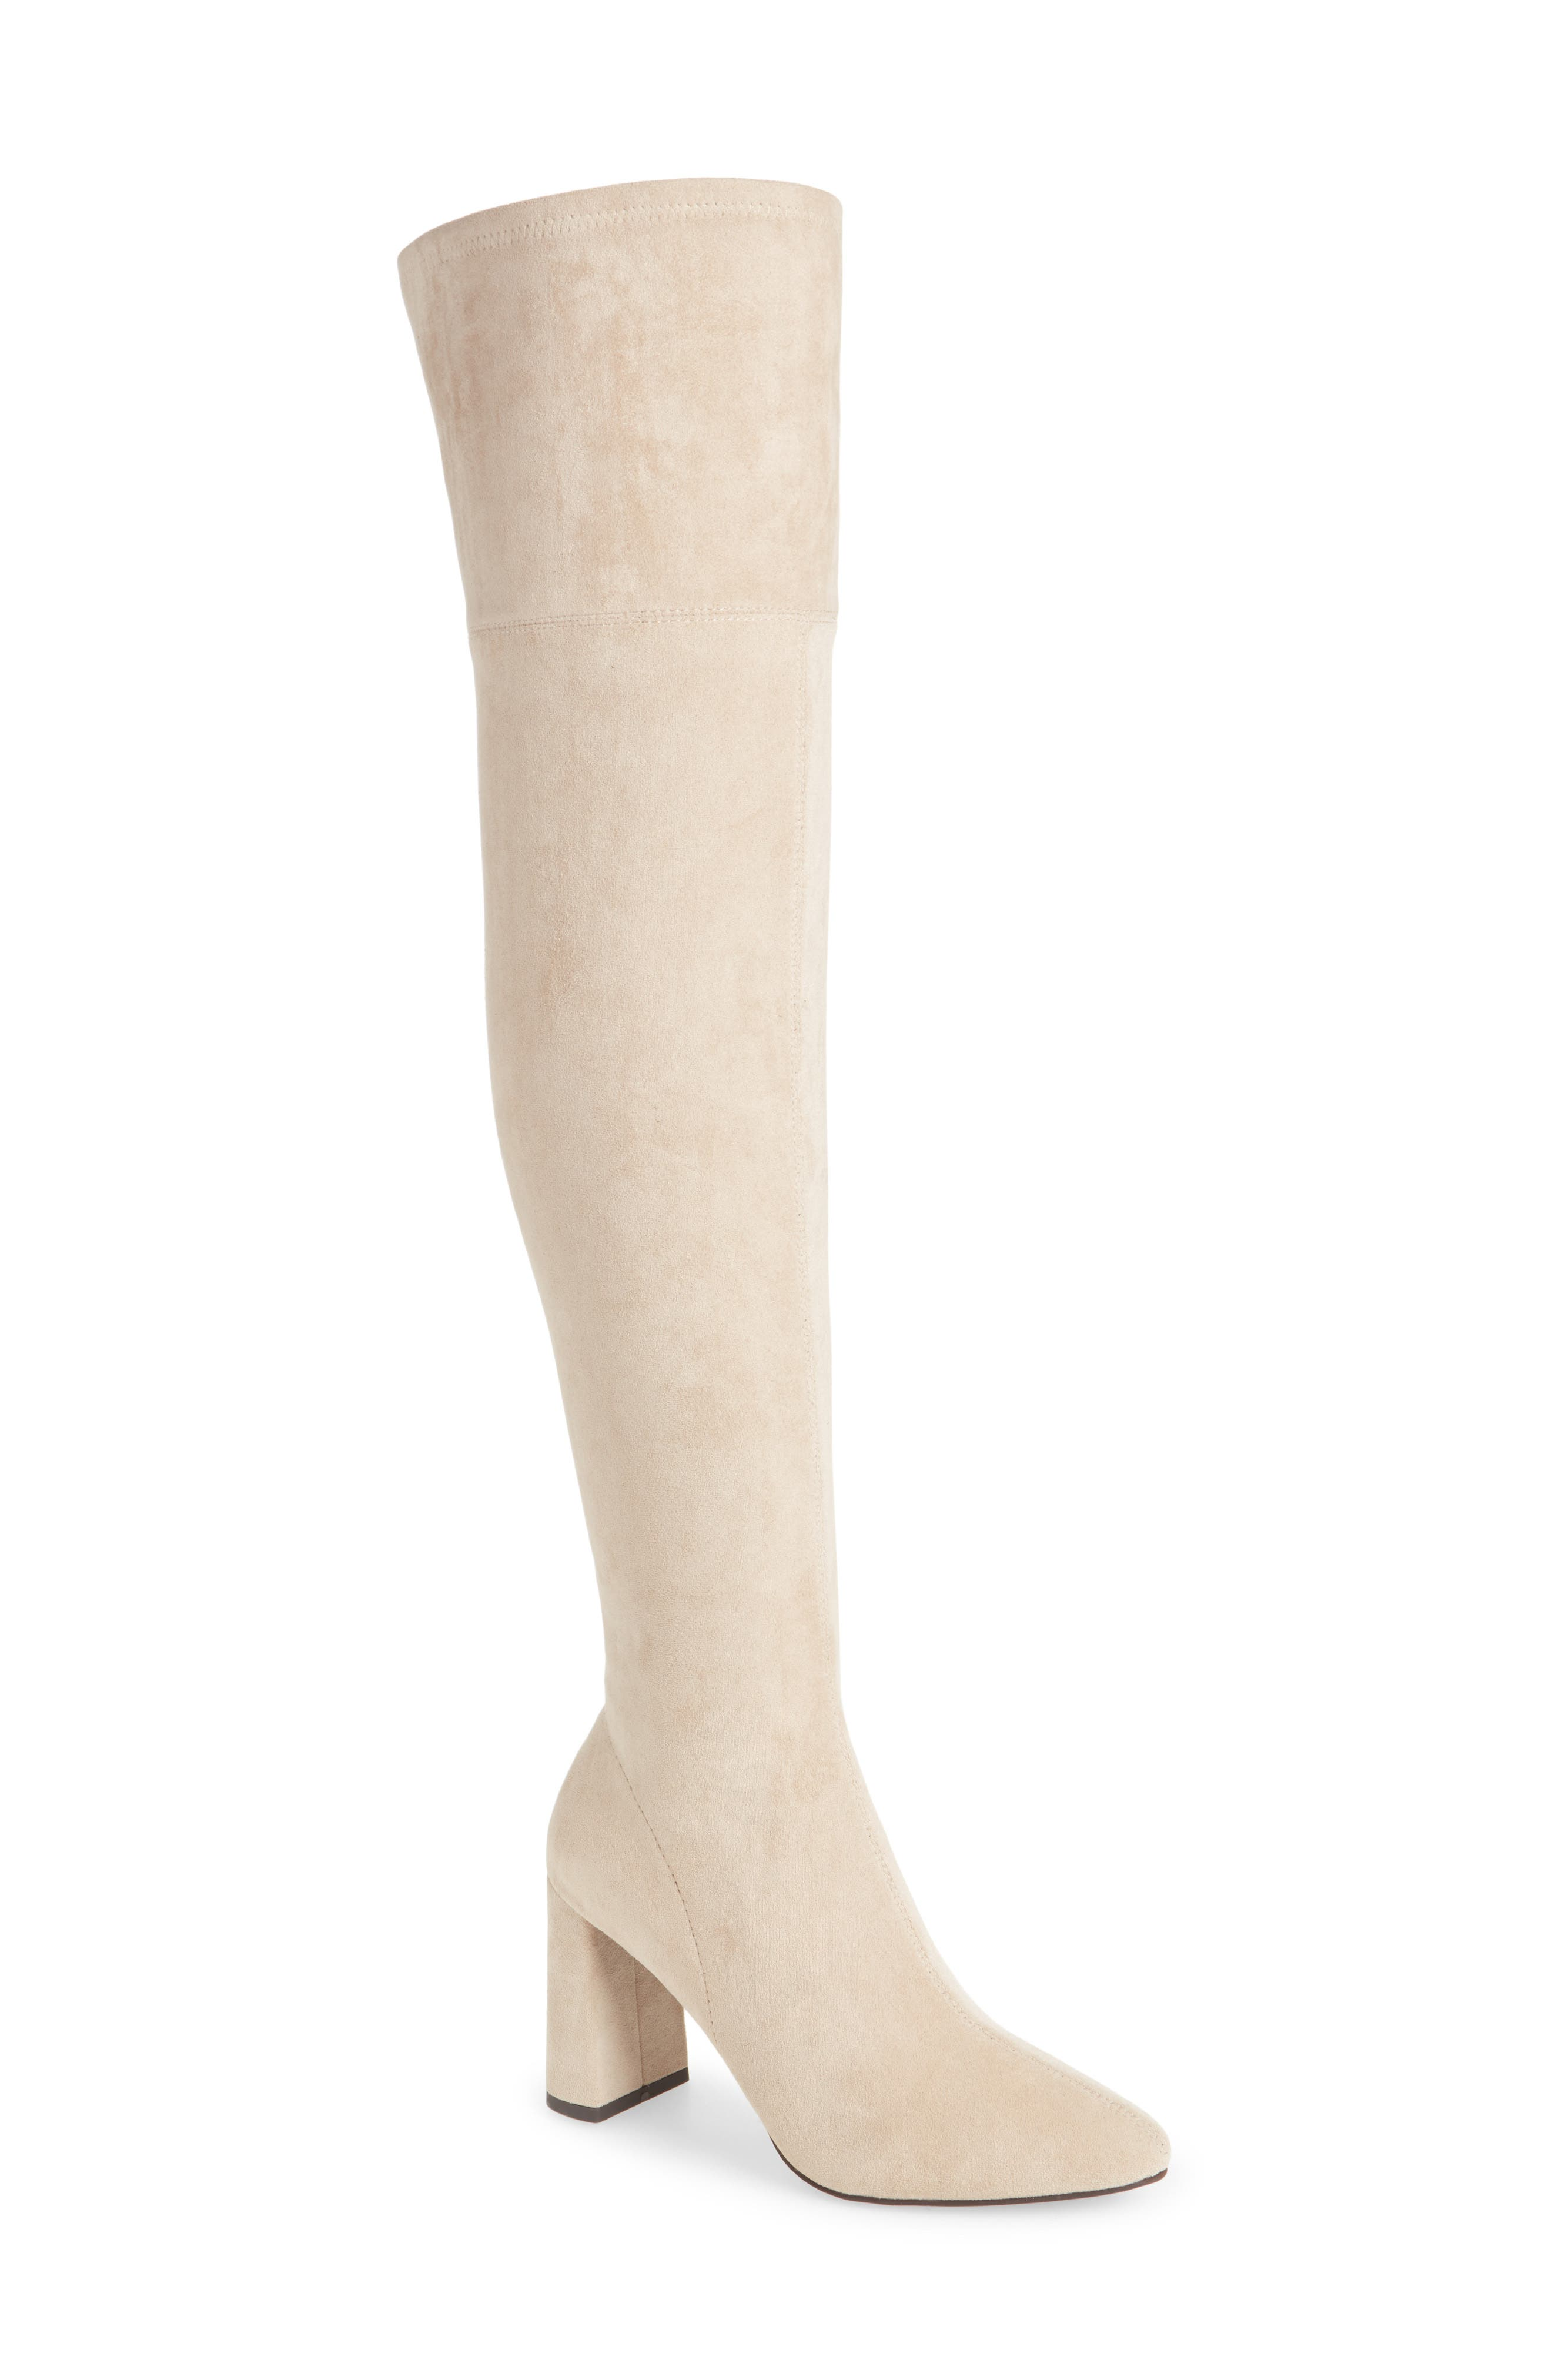 Parisah Over The Knee Boot